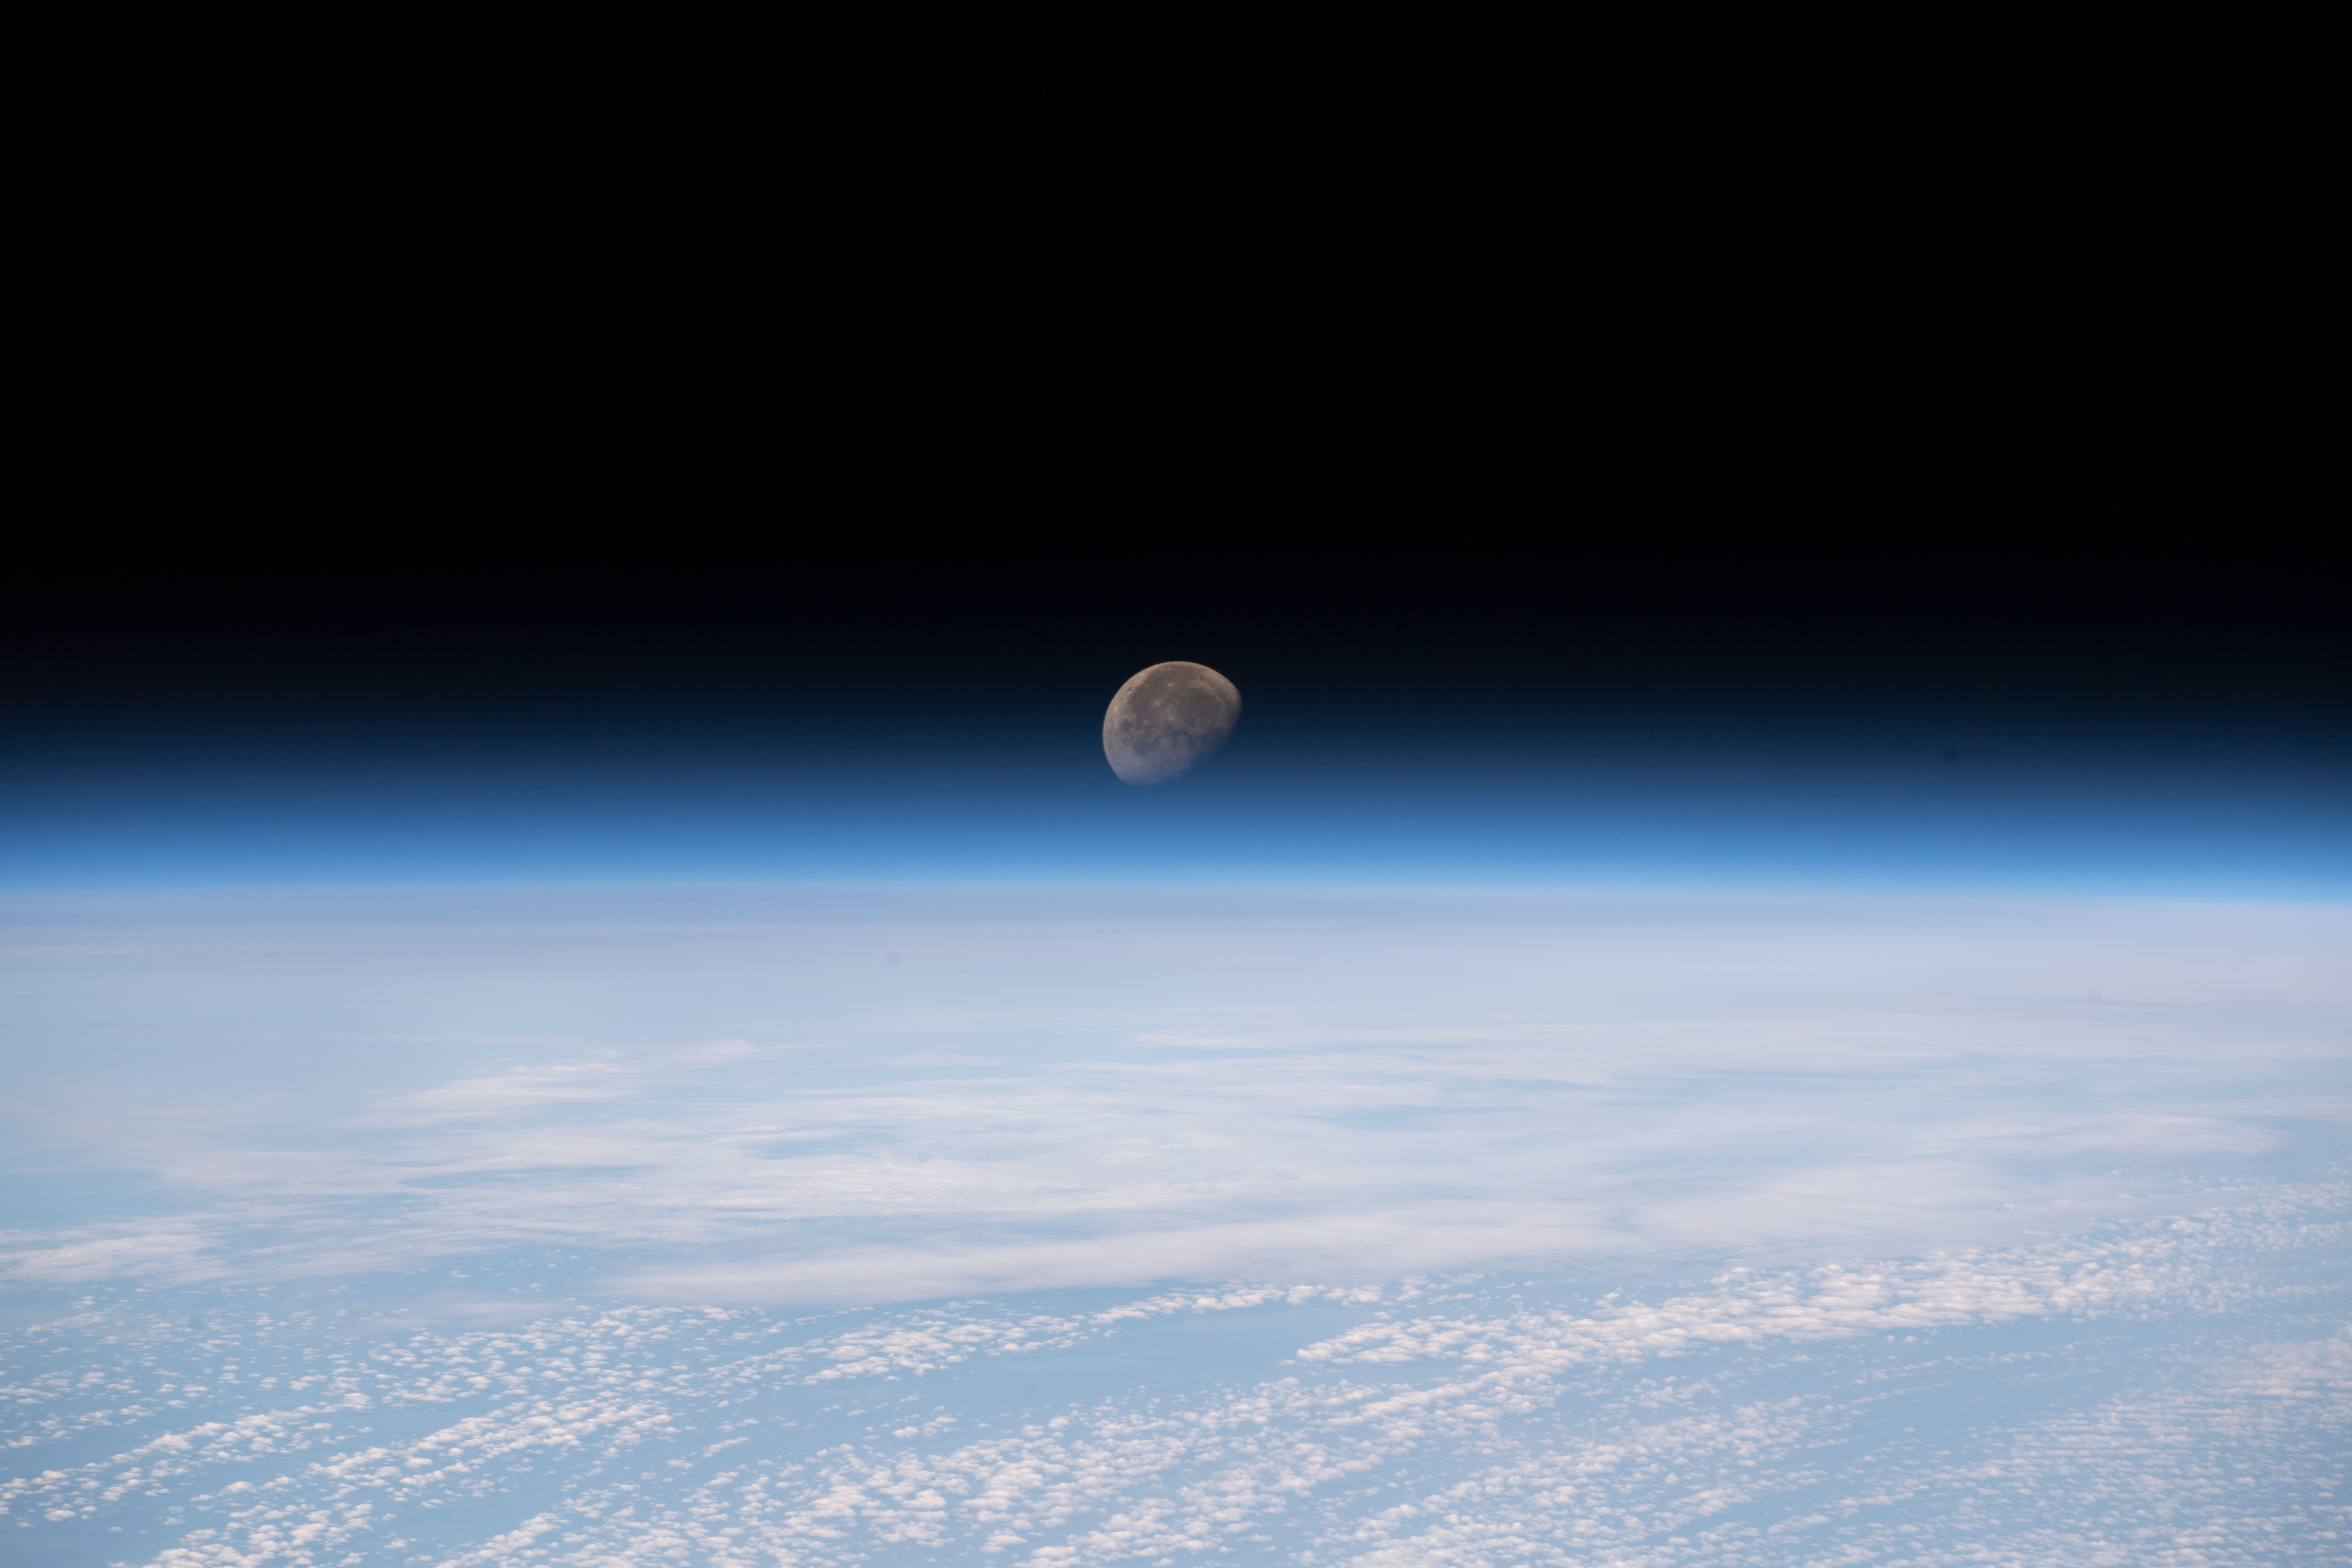 A photo by ISS